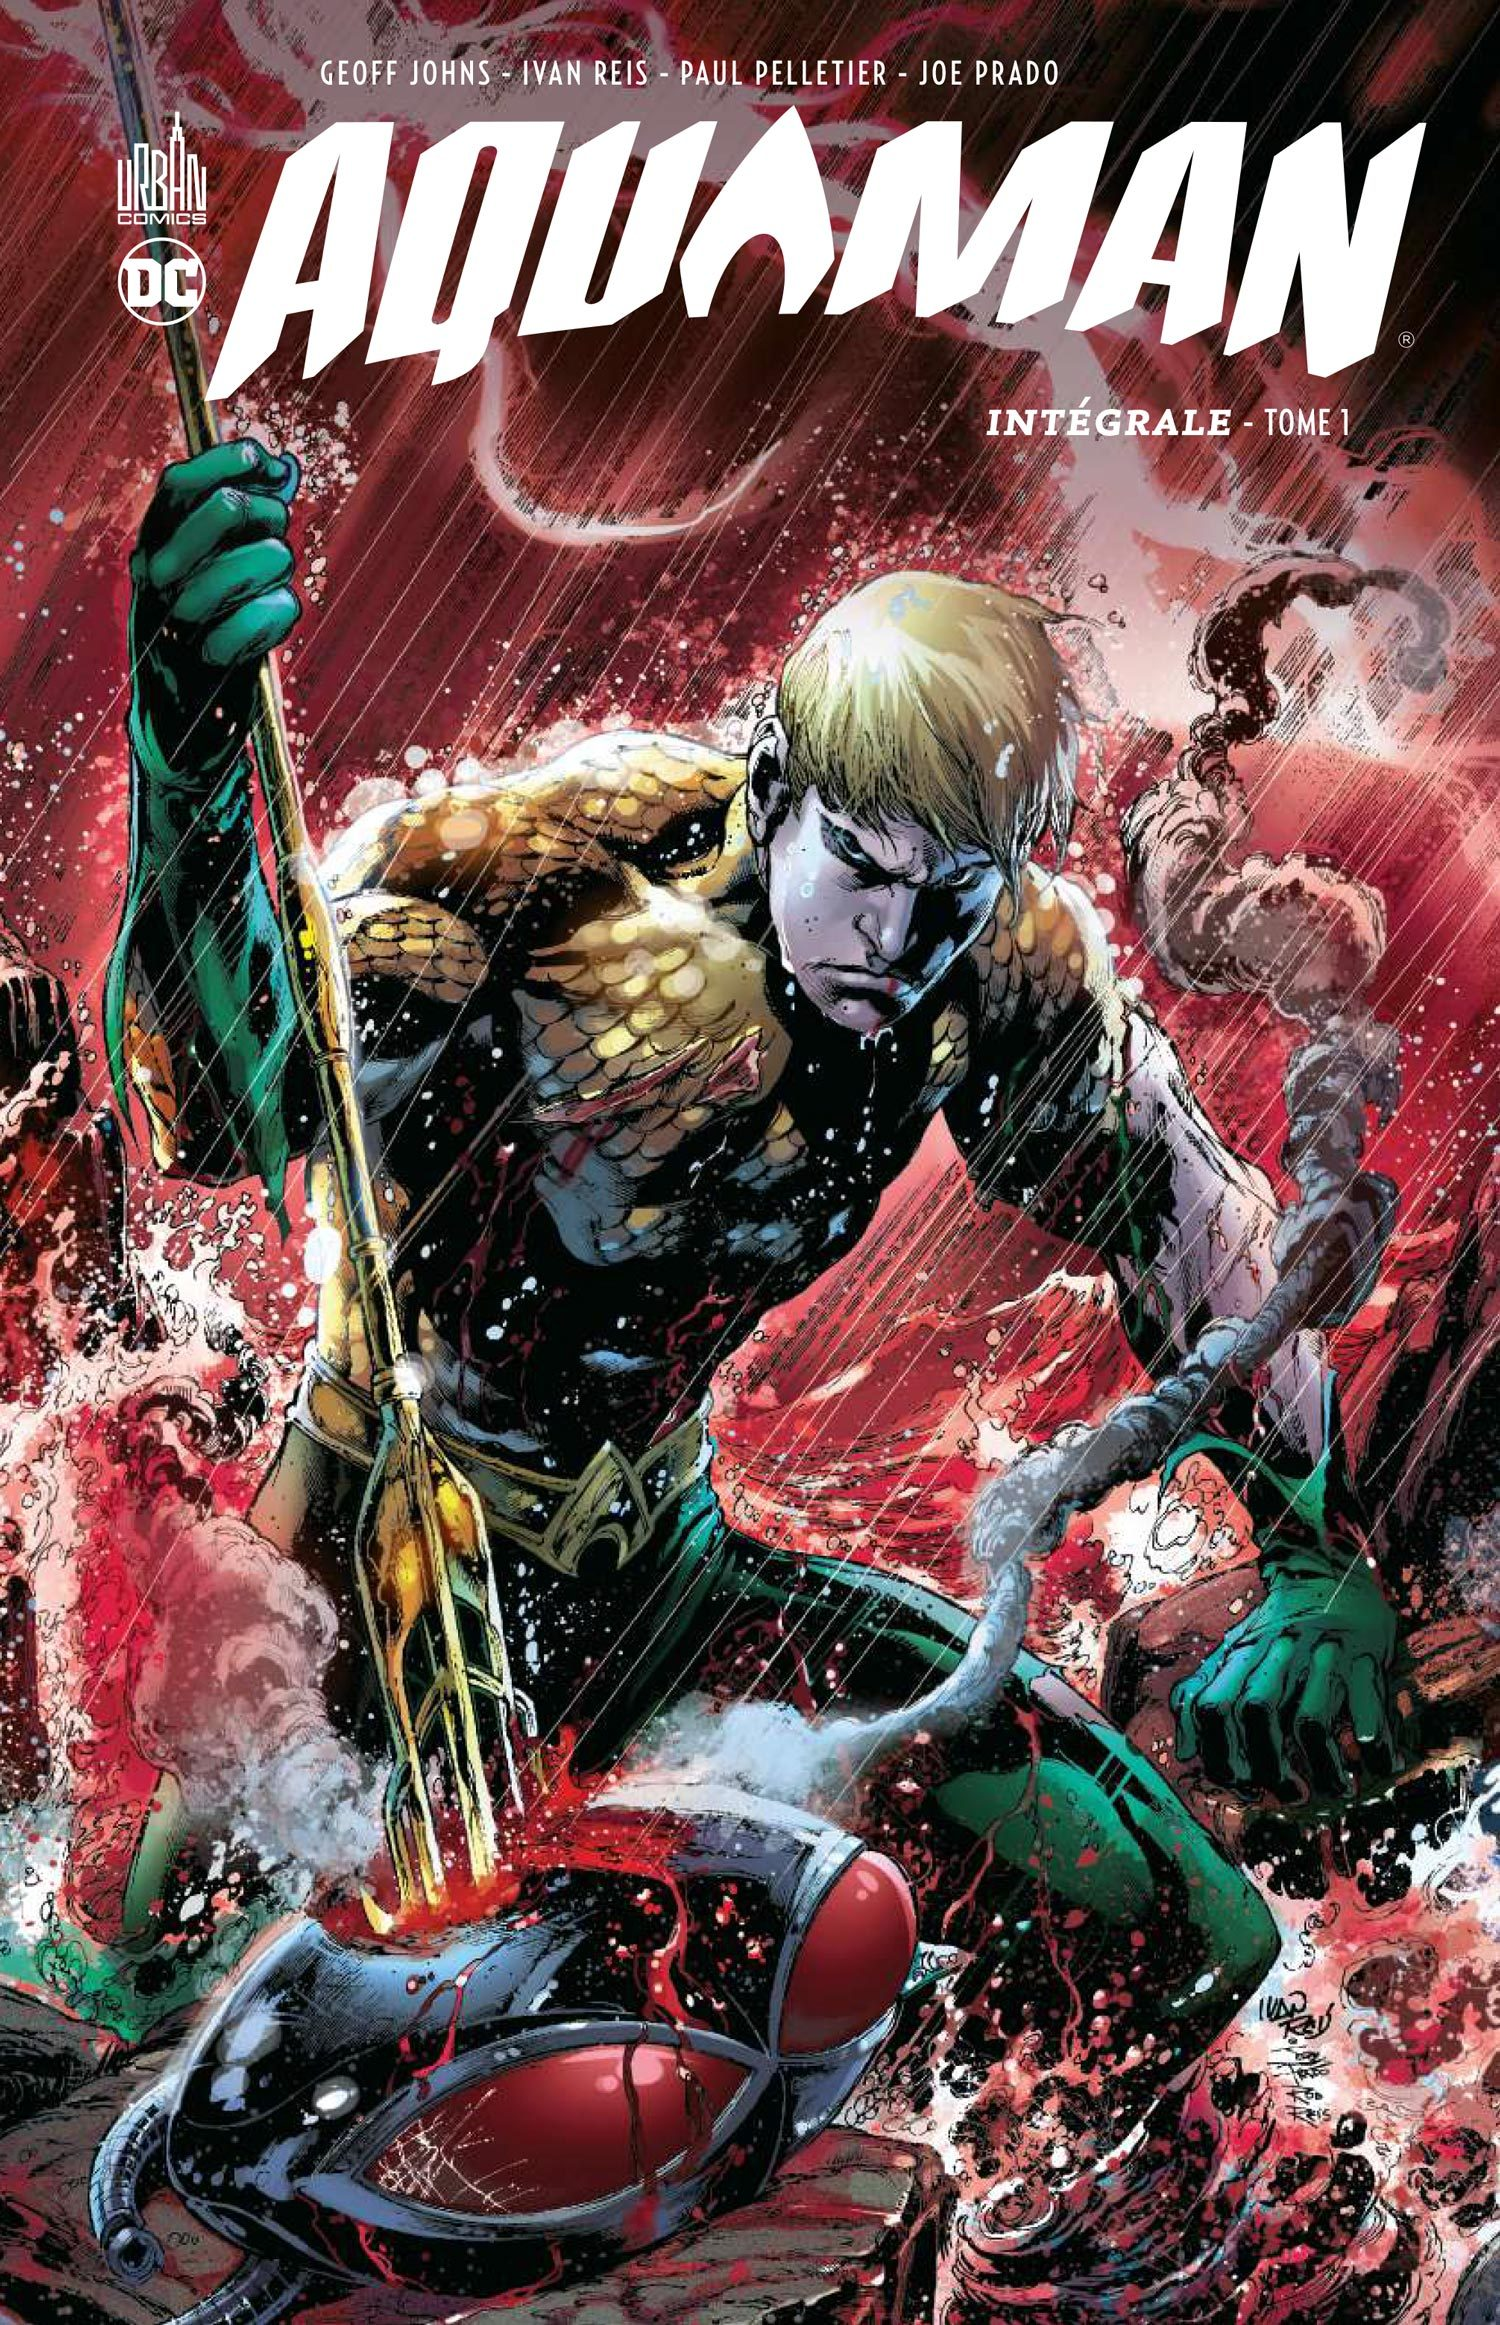 AQUAMAN INTEGRALE TOME 1